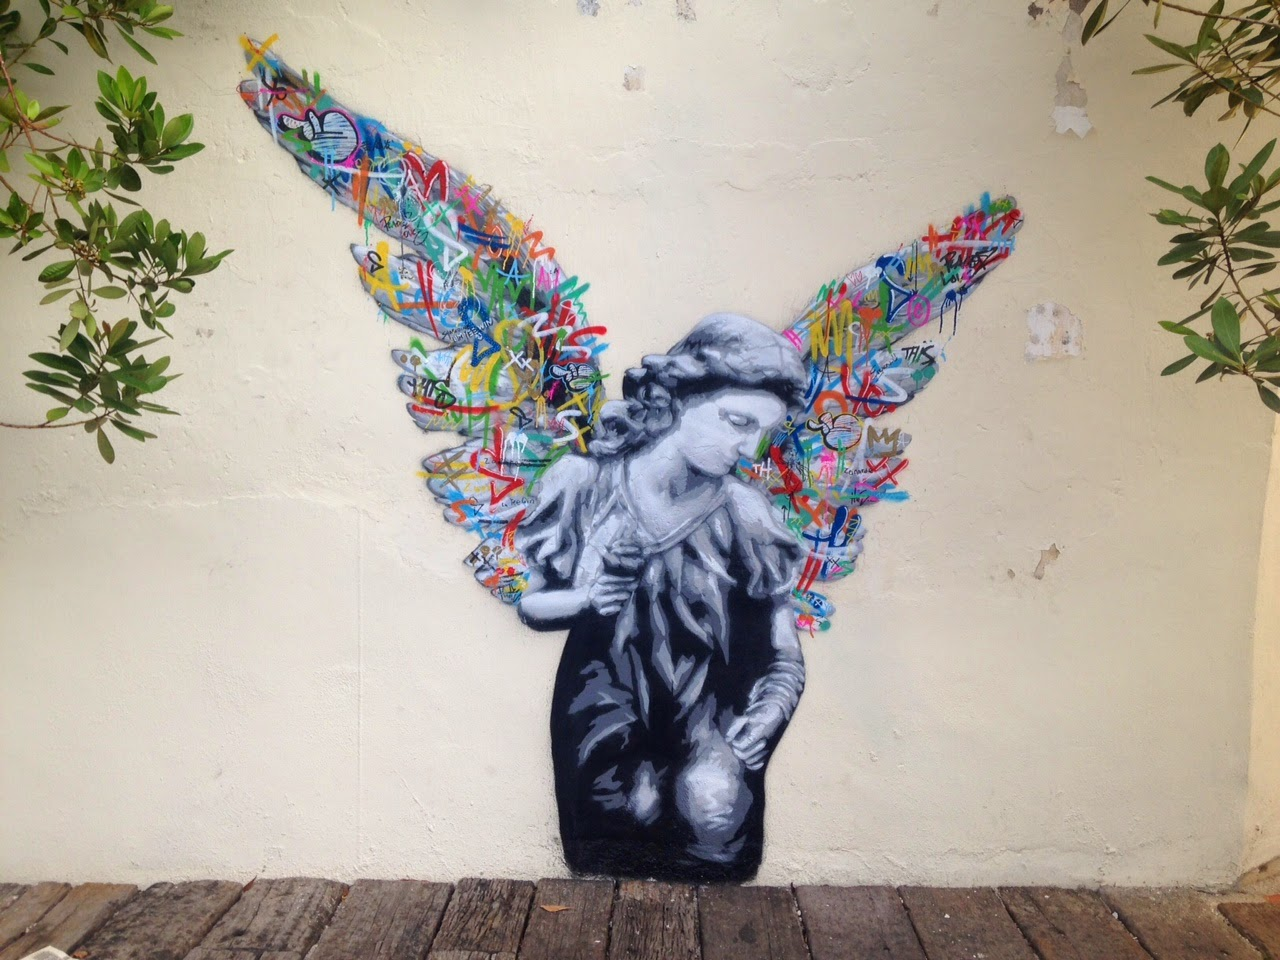 Along with Martin Ron or Ernest Zacharevic, Martin Whatson is also in Malaysia where he just dropped a series of new pieces somewhere on the streets of Penang.